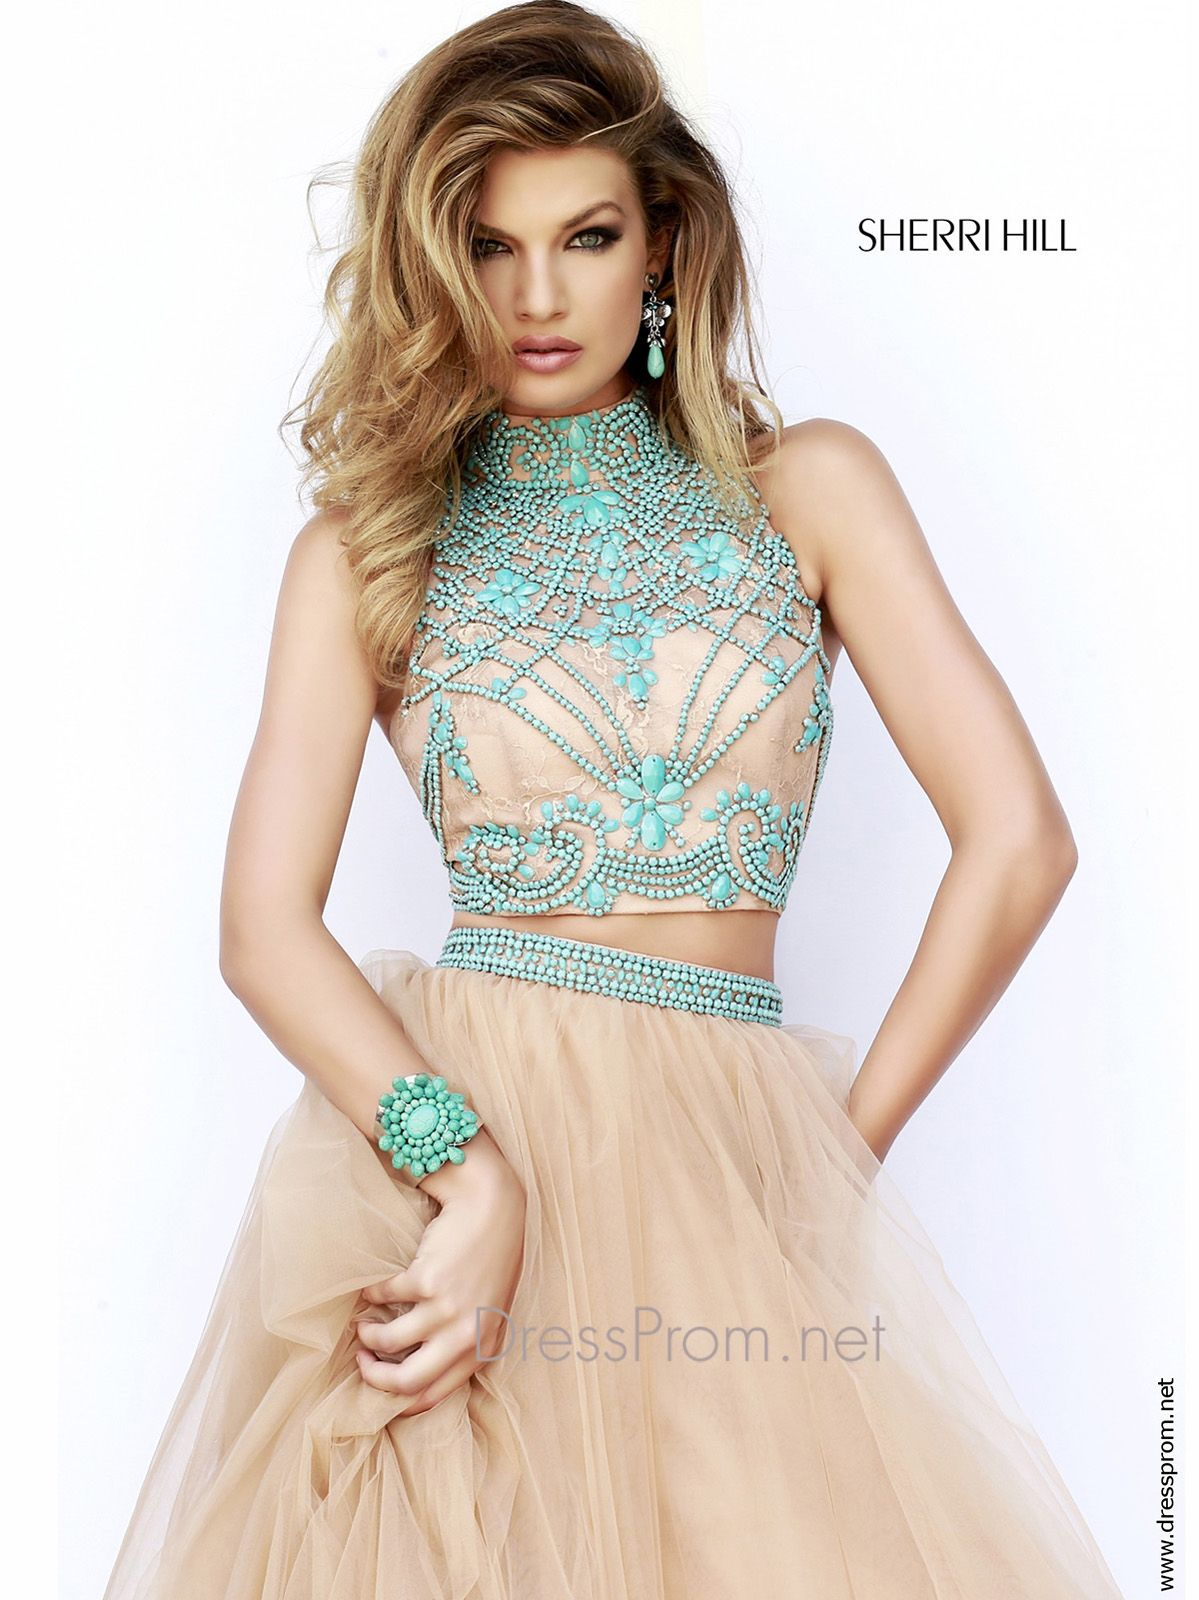 Make a statement wearing this spectacular two piece Sherri Hill prom dress. This two piece Sherri Hill prom dress 11225 features a high neckline, gorgeous fitted crop top bodice embellished with turquoise beading, and a tulle A-line skirt. The gorgeous skirt has a beaded waistband that highlights your natural waist. Finish this two piece Sherri Hill prom dress with stylish earrings and designer shoes at DressProm.net. Features: Silhouette: A-line Neckline: High Neckline Available in sizes…